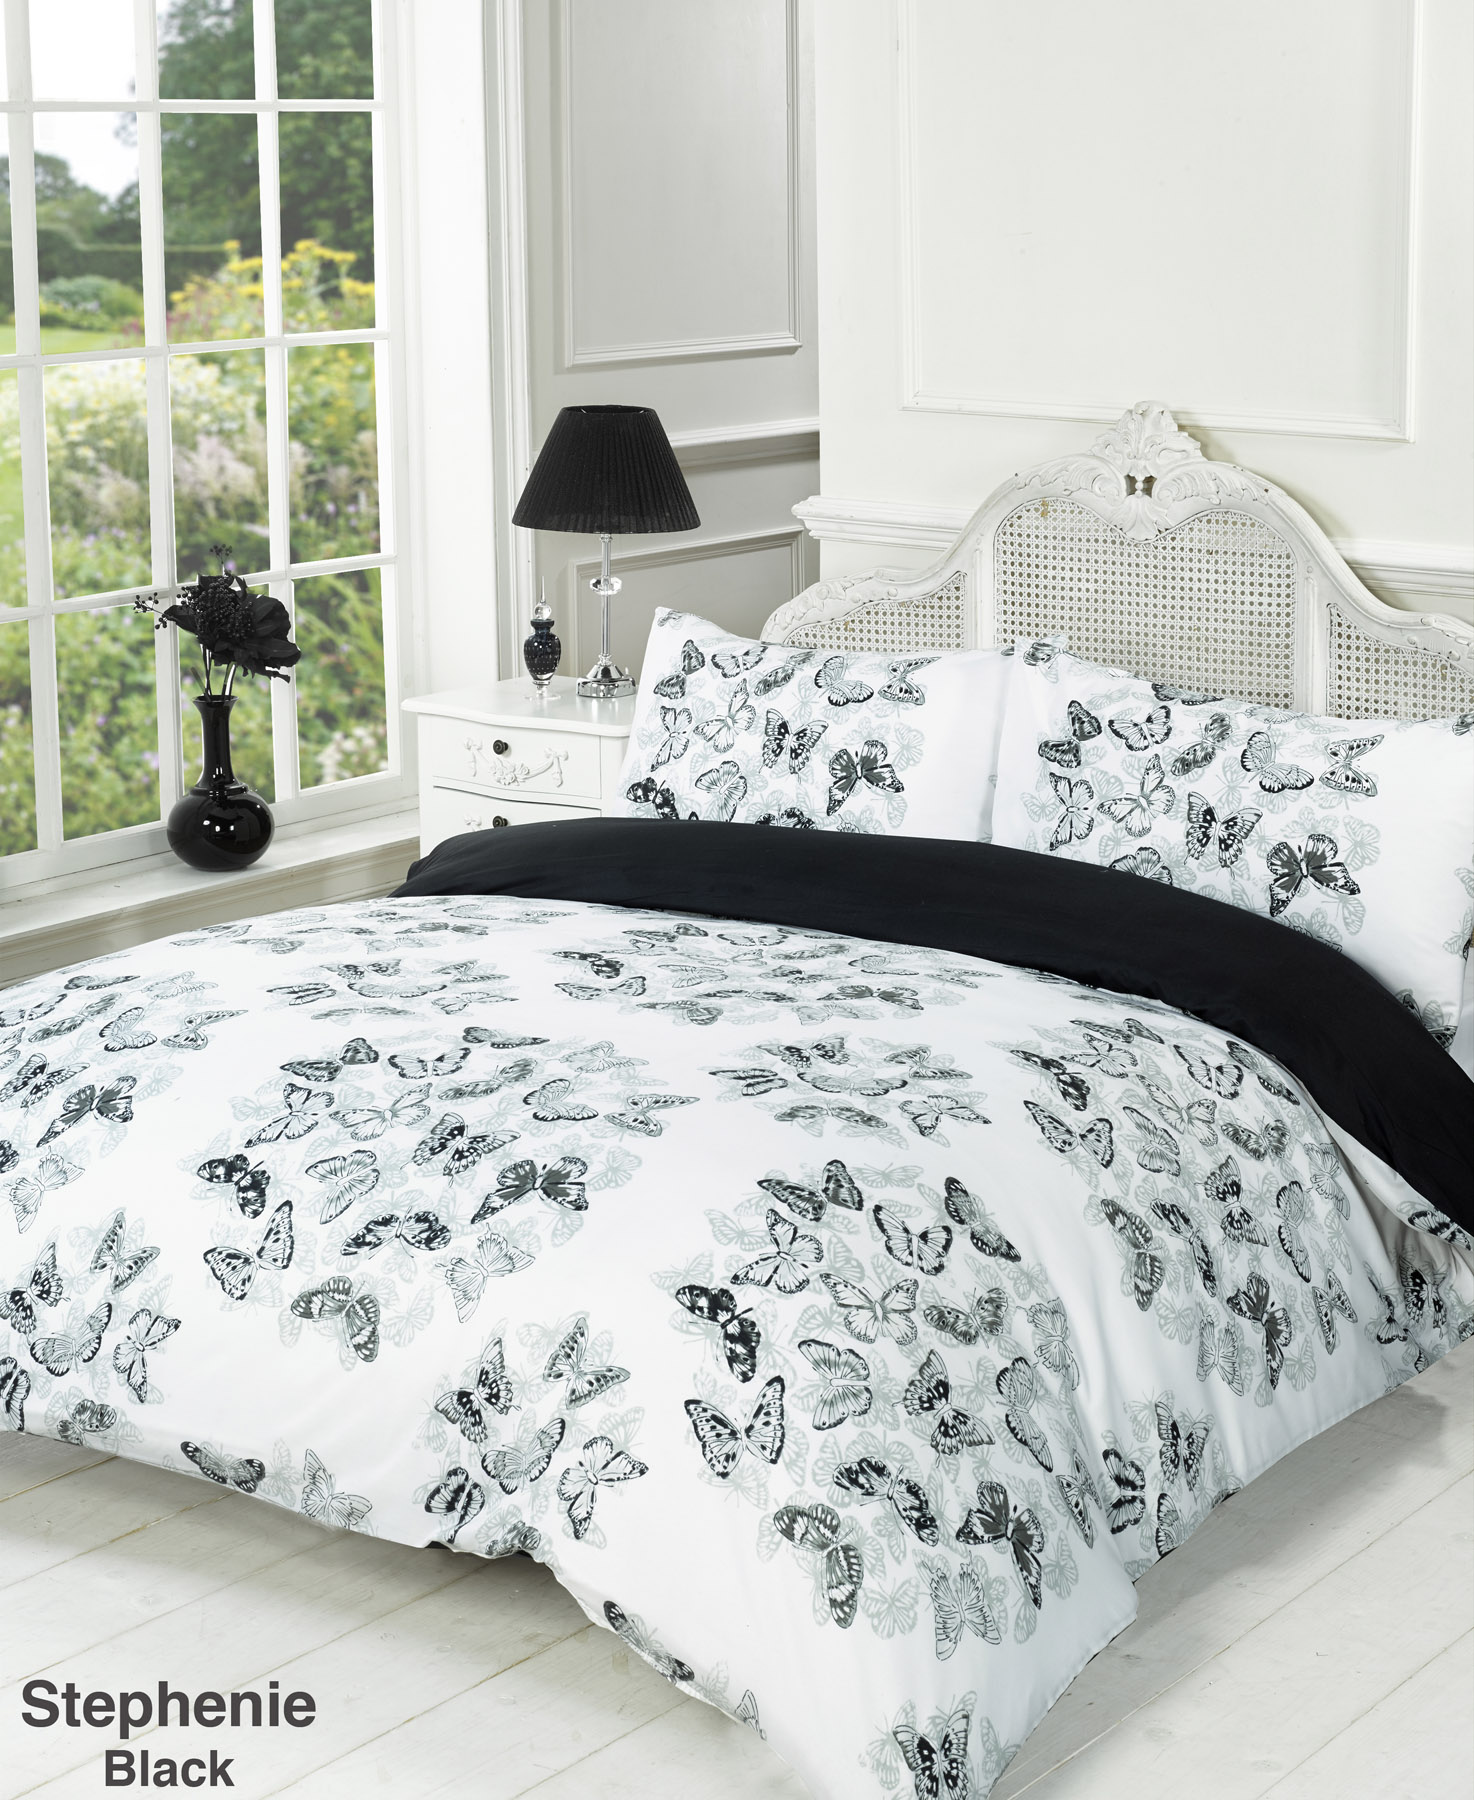 Shop bedding at IKEA. Choose from our large selection of bed linen, bed sets, sheets, pillowcases and duvet covers to match your bedroom.